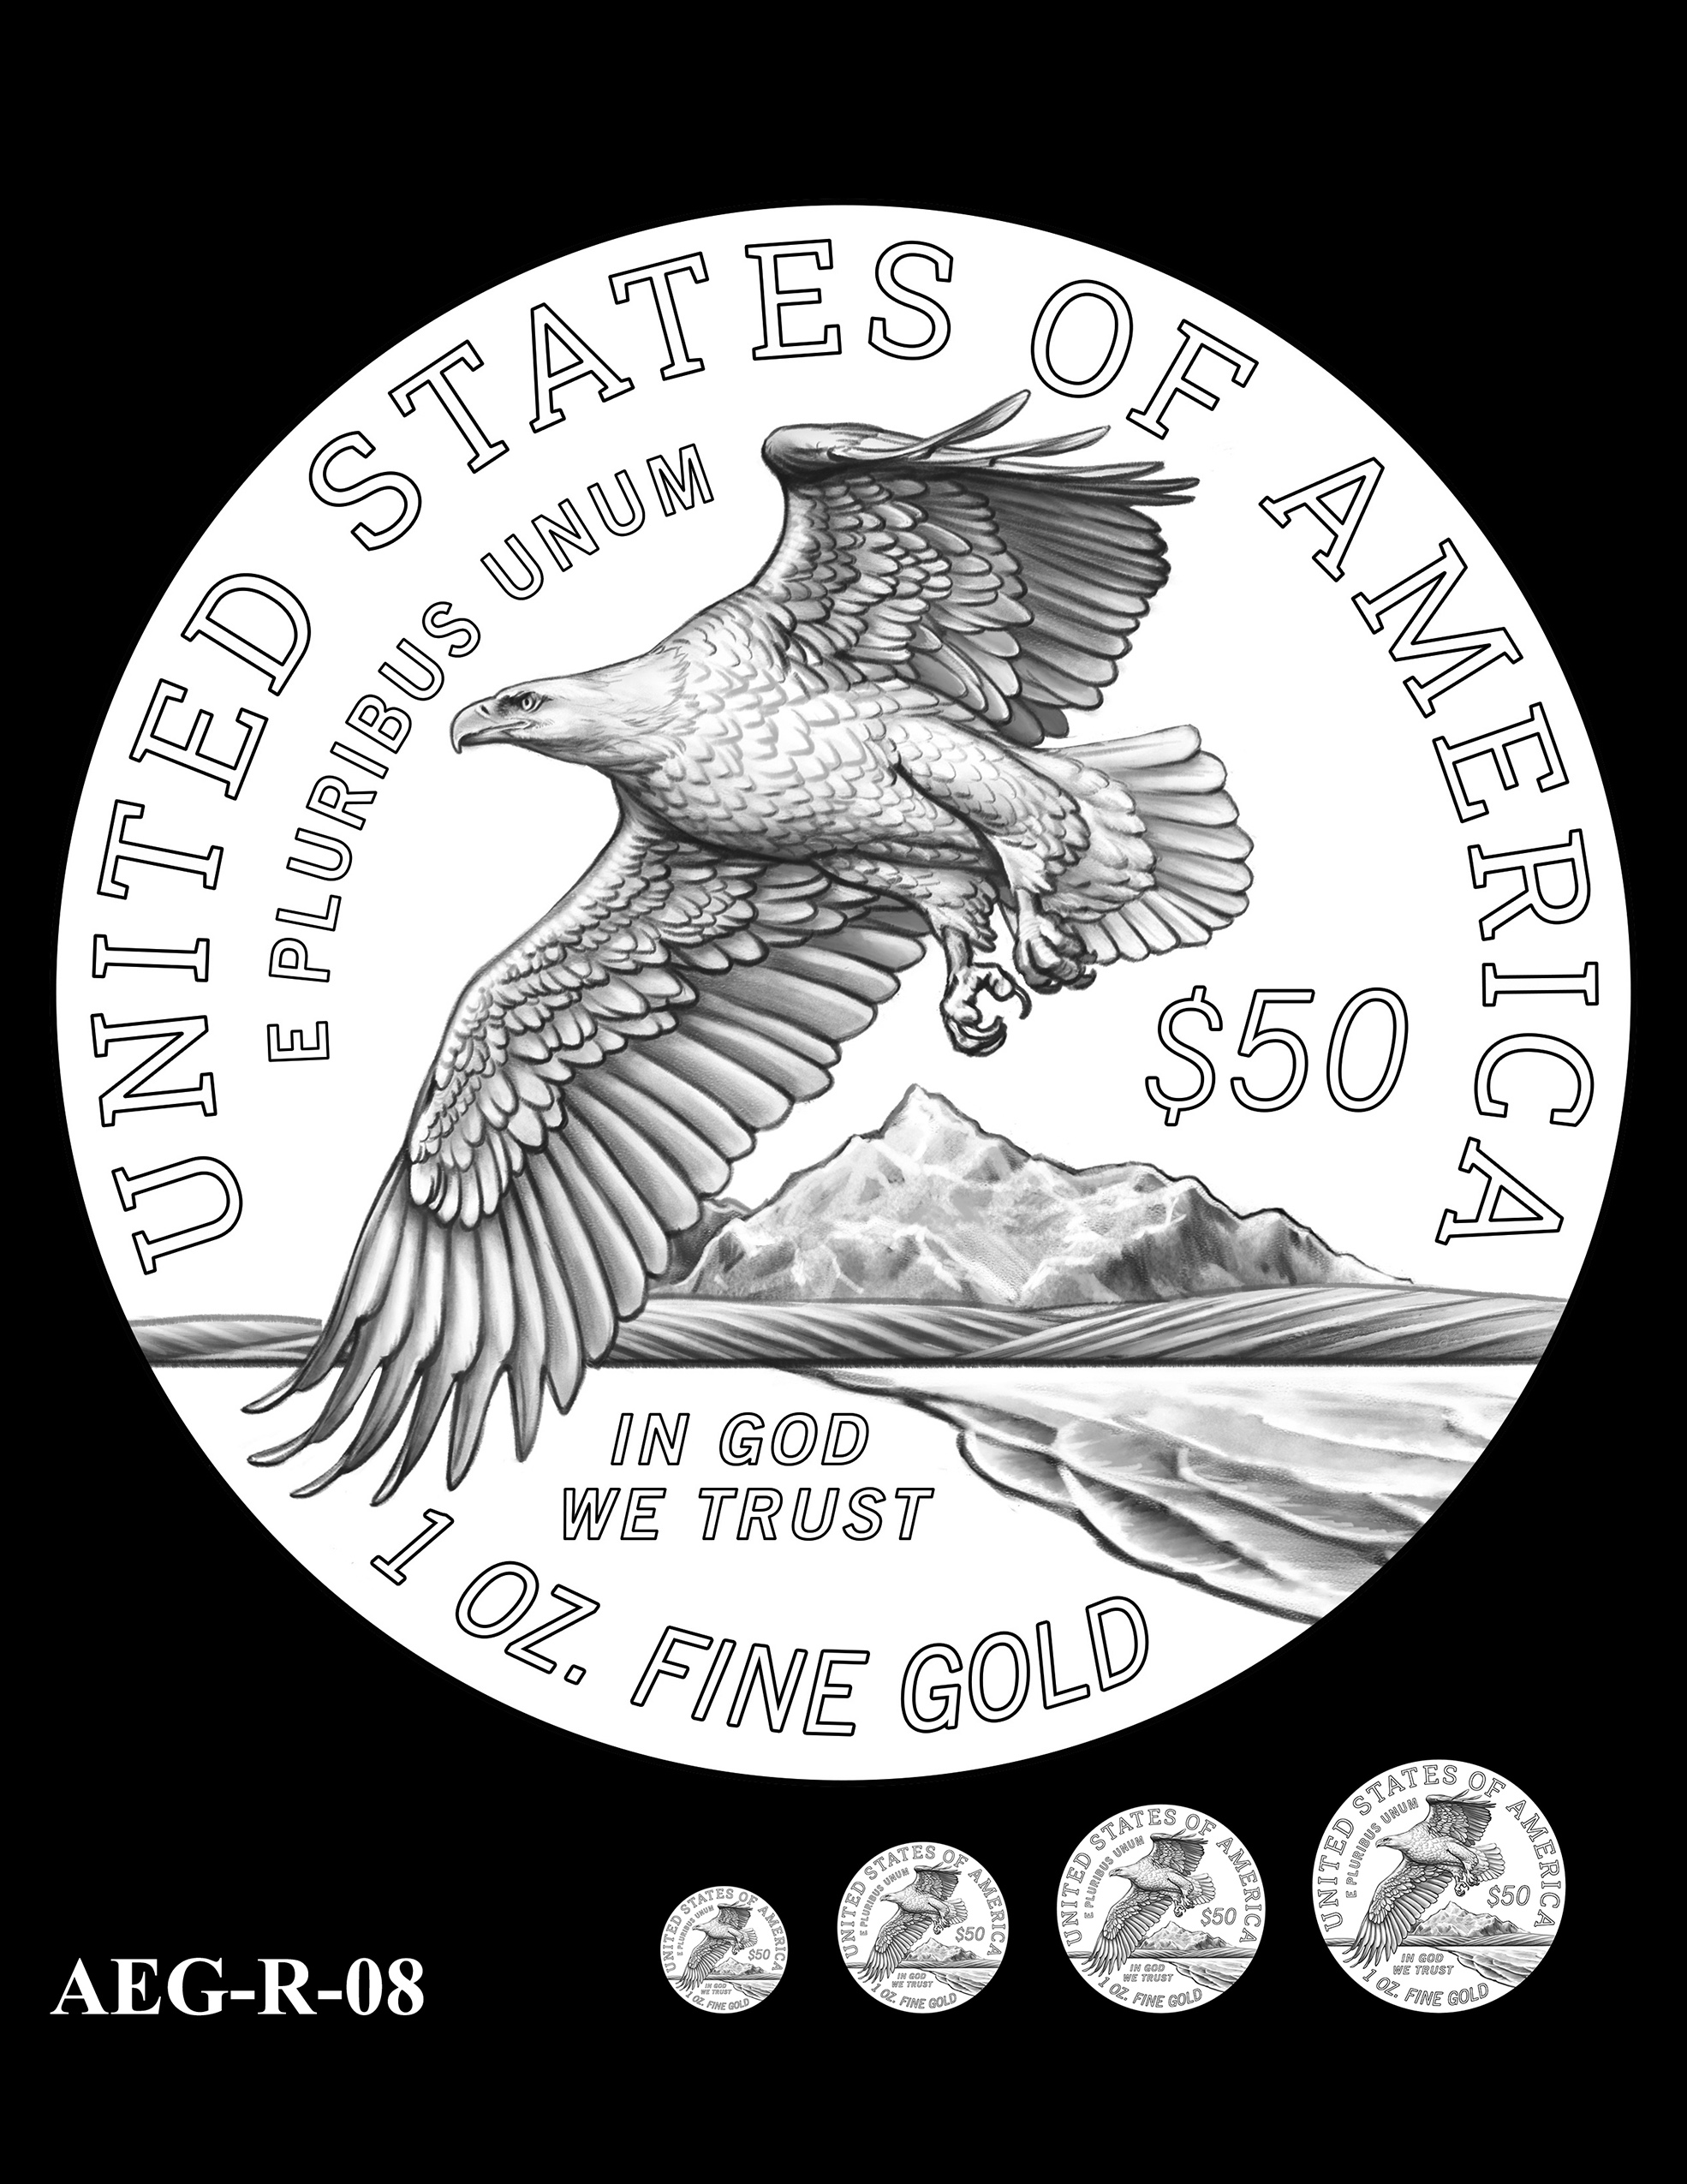 AEG-R-08 -- American Eagle Proof and Bullion Gold Coin - Reverse